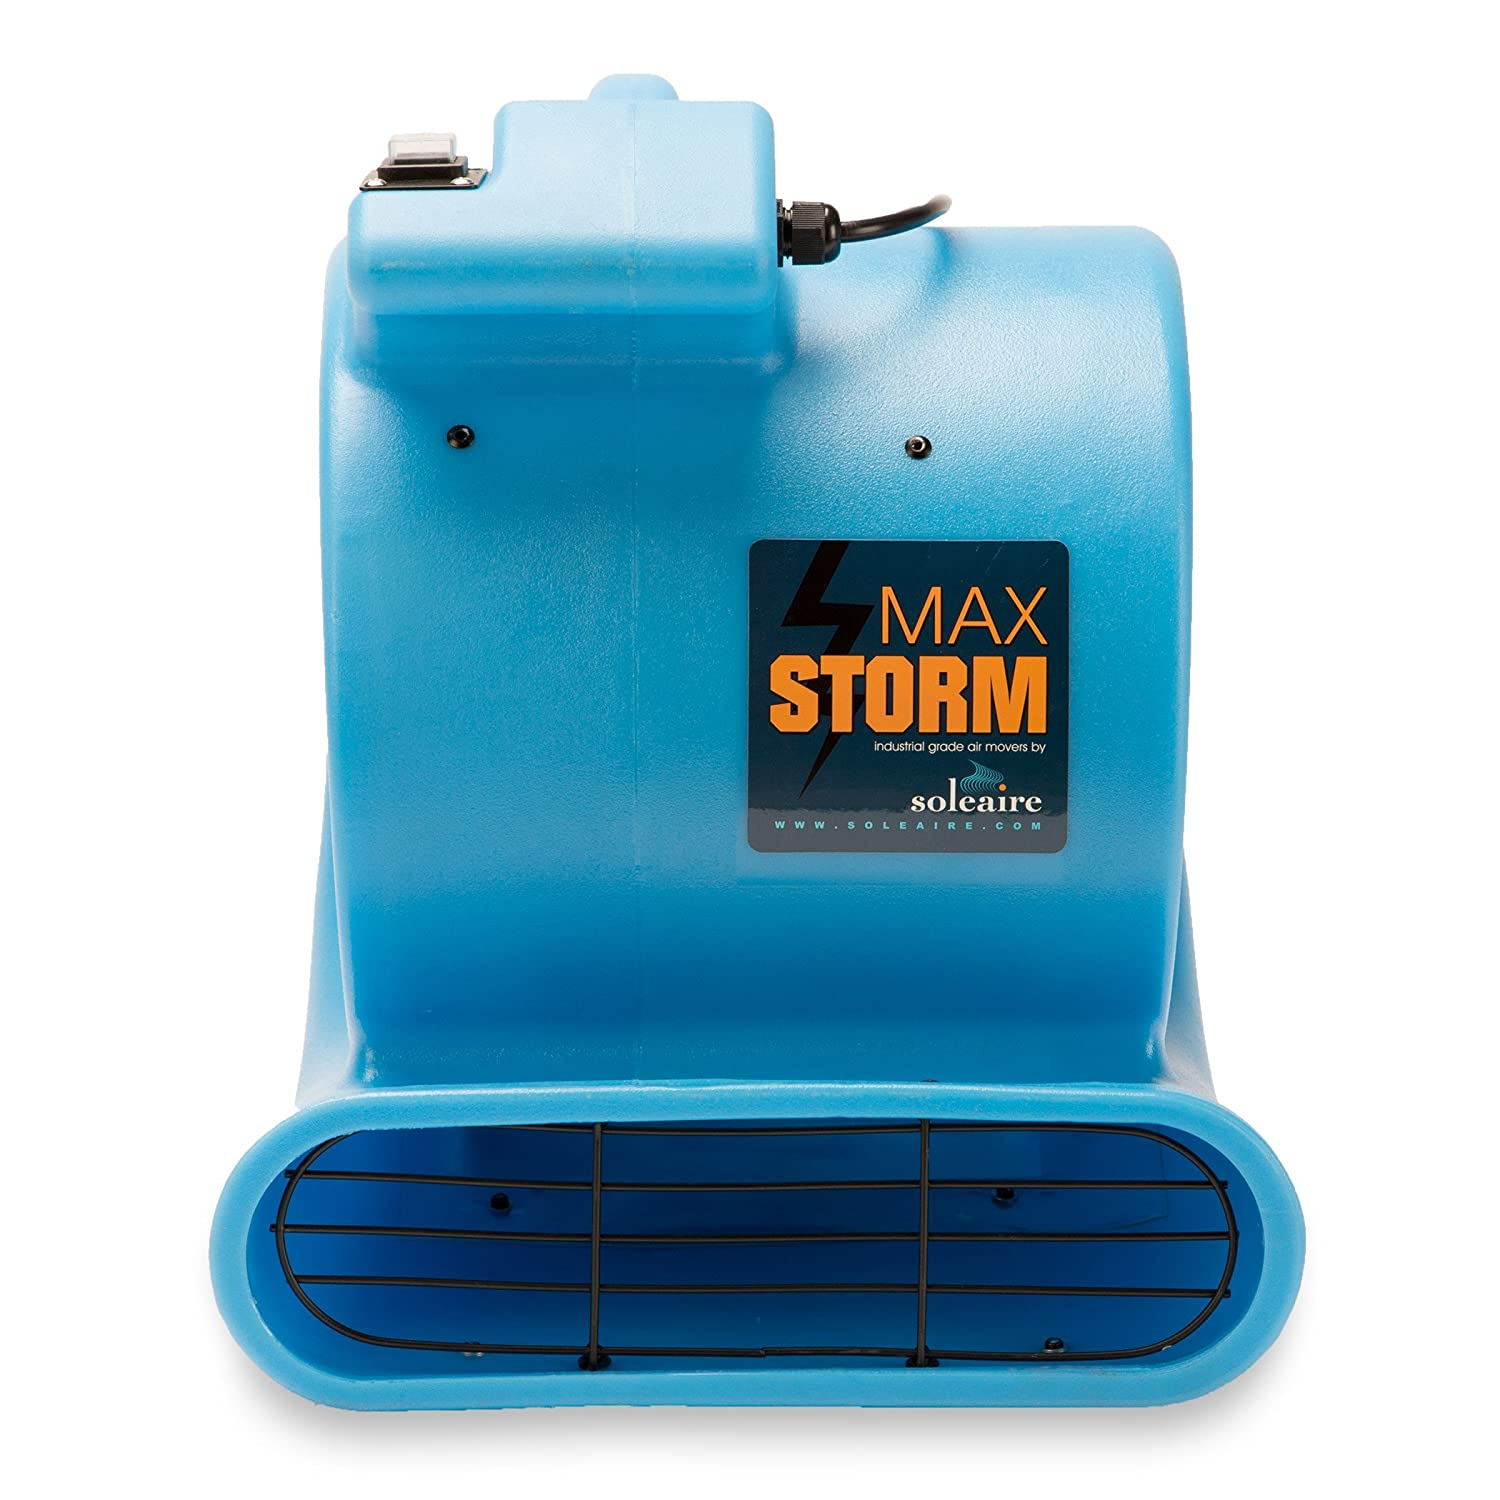 Soleaire Max Storm 1//2 HP Durable Lightweight Air Mover Carpet Dryer Blower Floor Fan for Pro Janitorial Renewed Blue